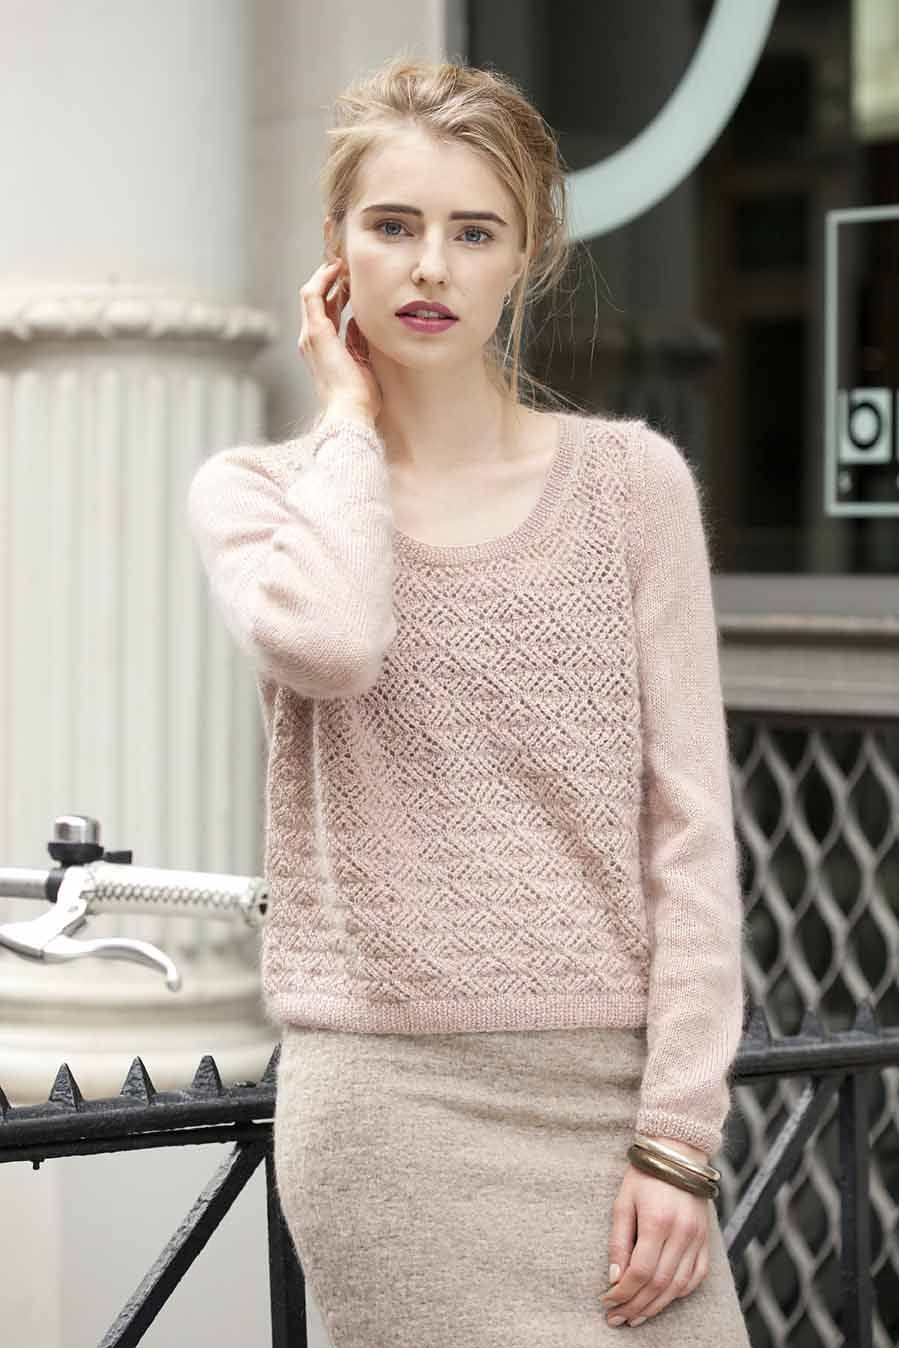 Ravelry: #12 Lacy Pullover by Sarah Hatton | K n i t t i n g ...